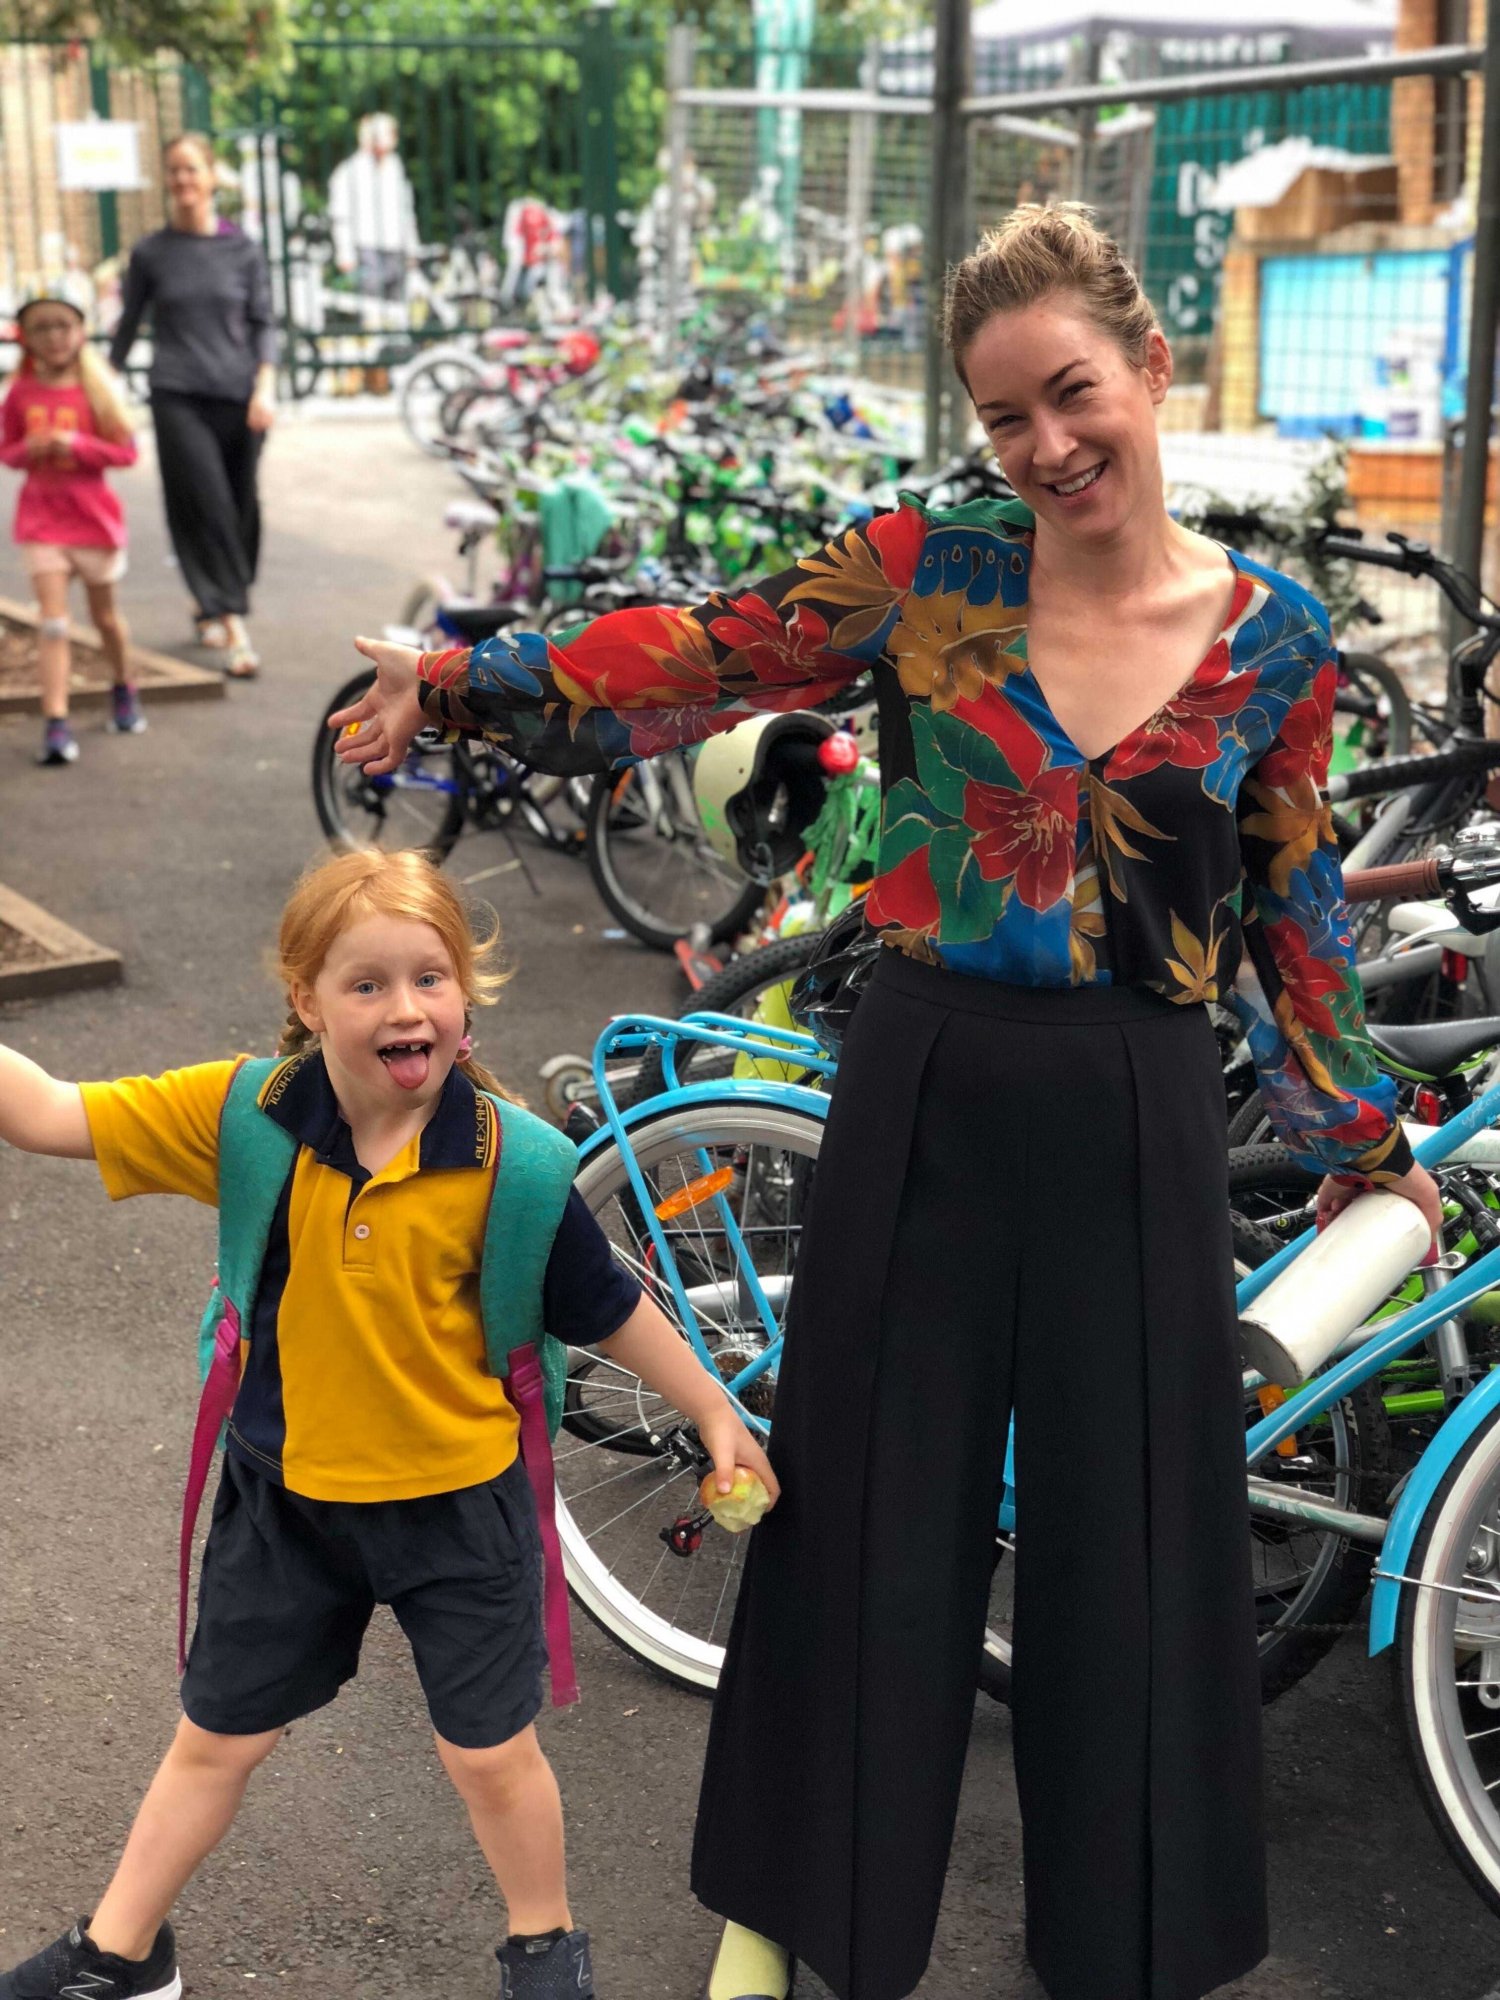 Woman and child in colourful clothes in school yard with bicycles.